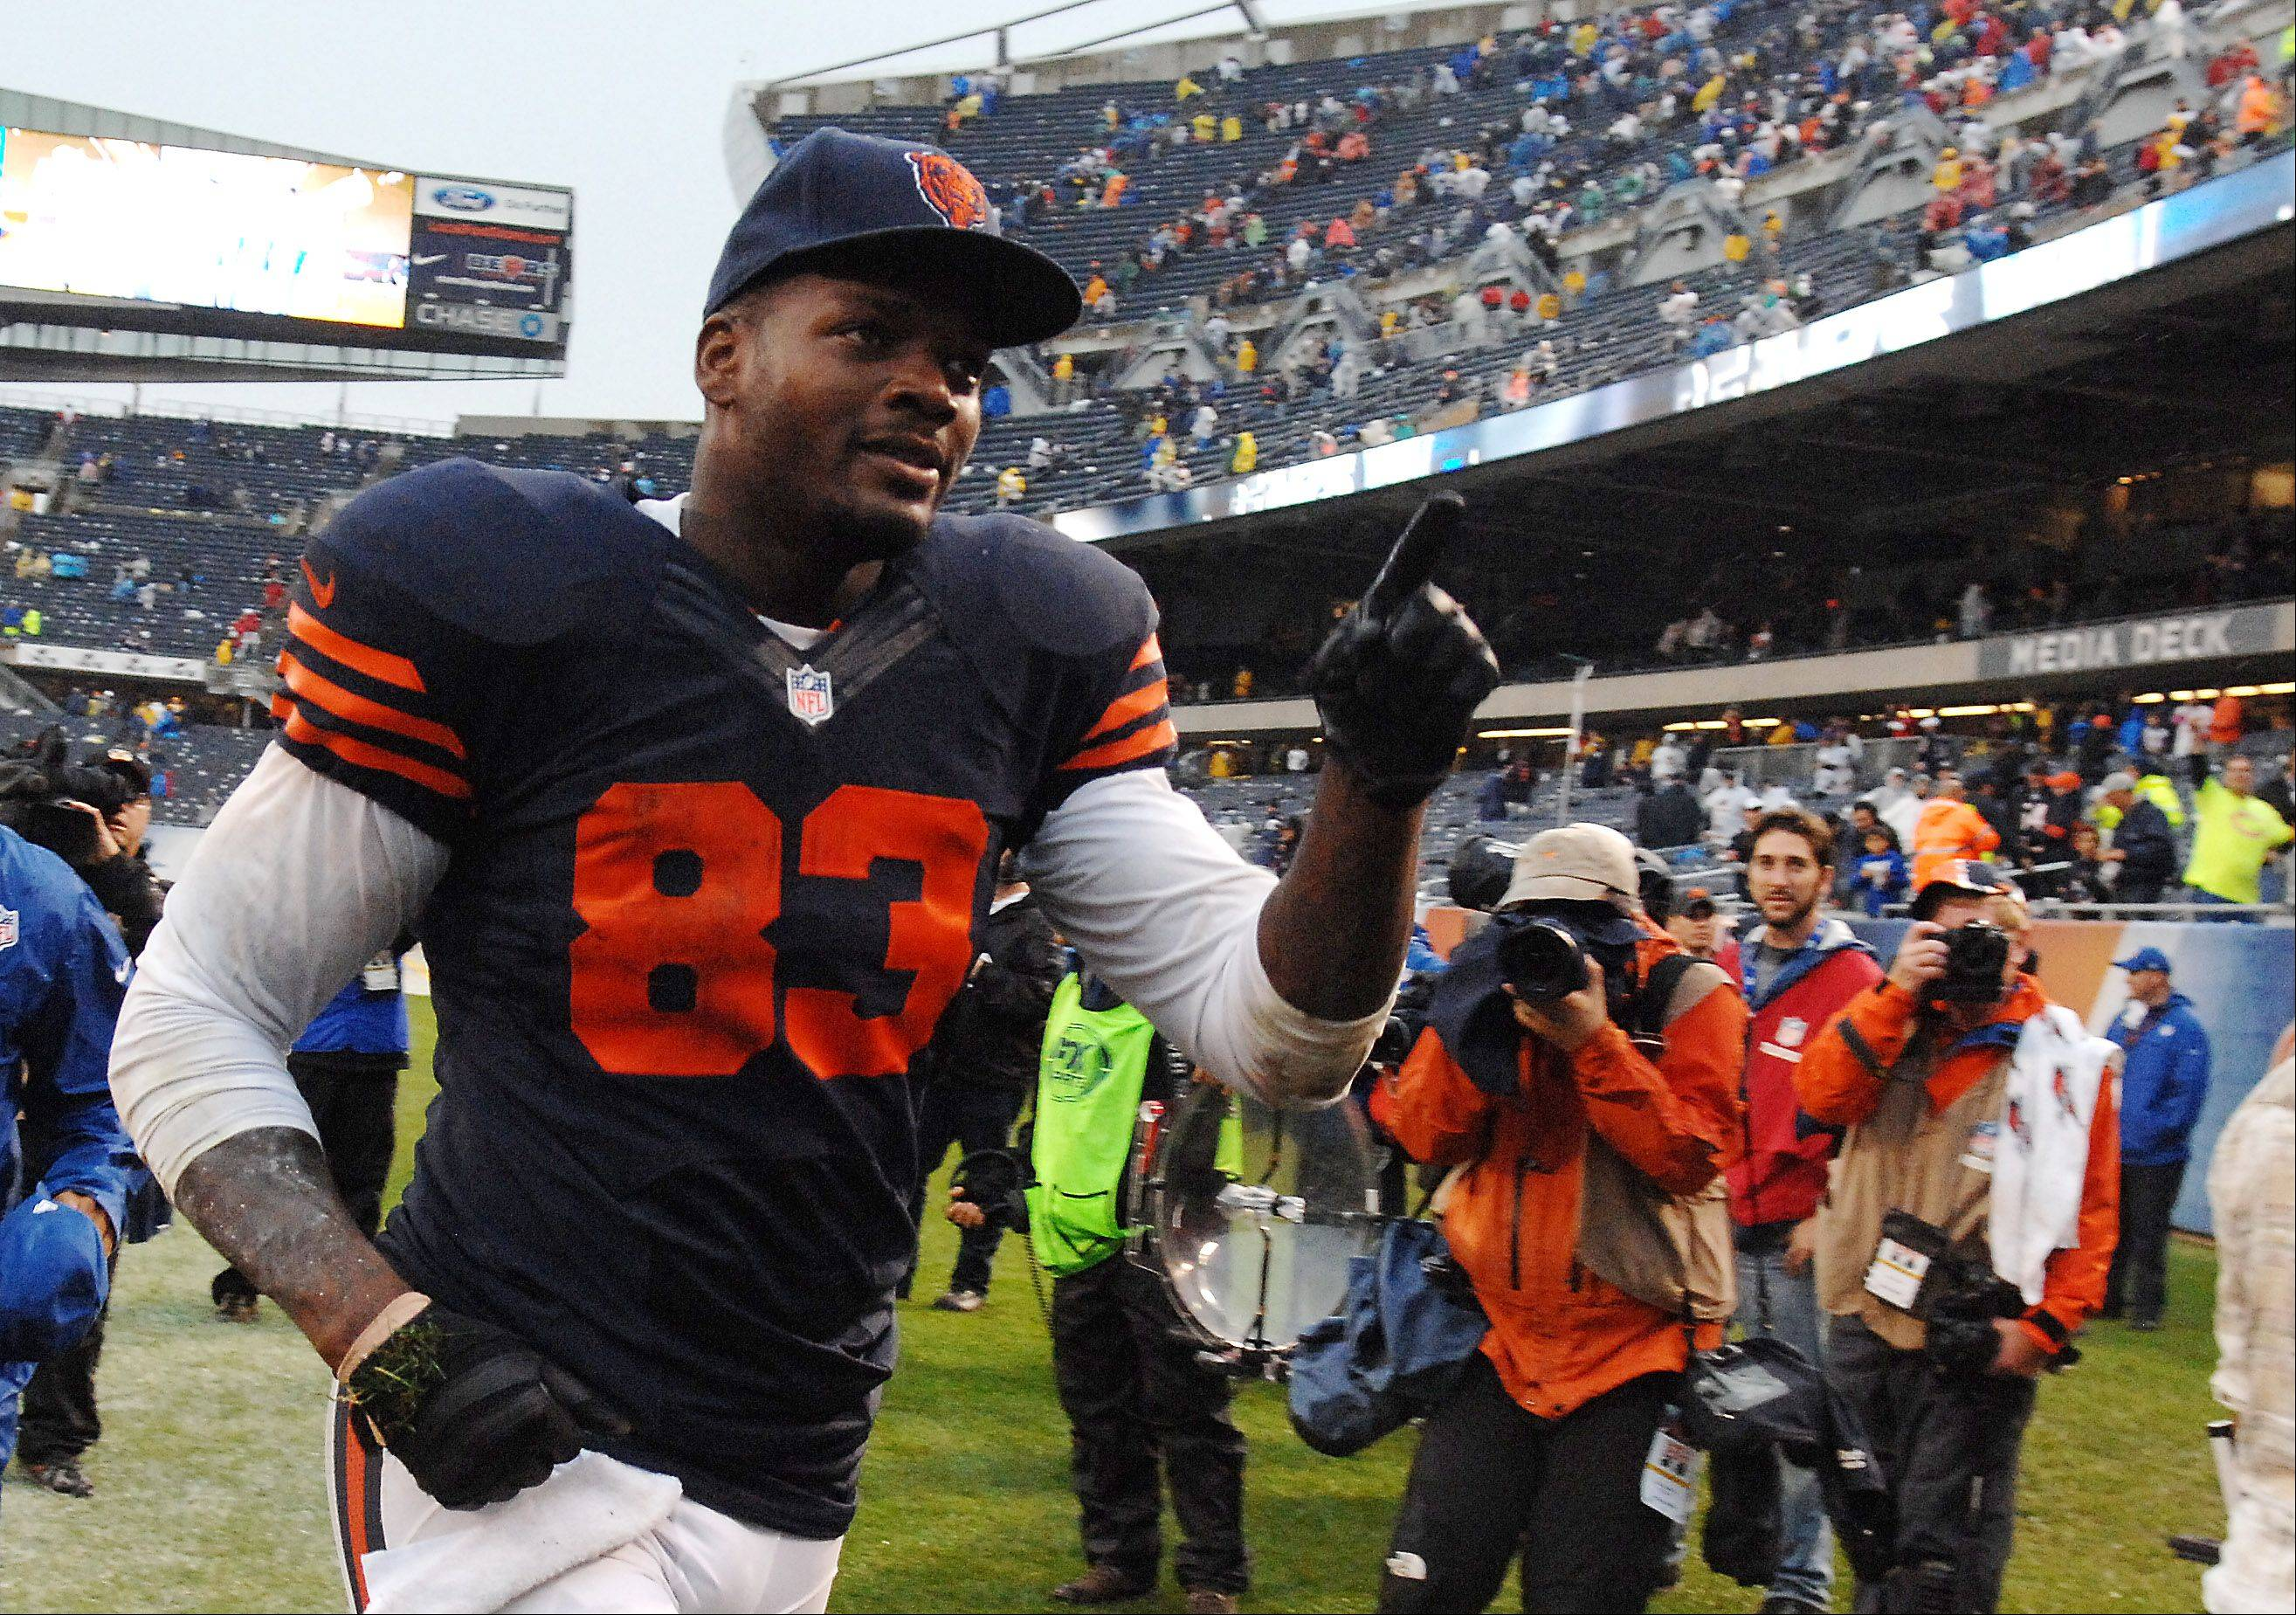 Chicago Bears tight end Martellus Bennett (83) runs off the field after catching the game-winning touchdown pass during Sunday's game at Soldier Field in Chicago.